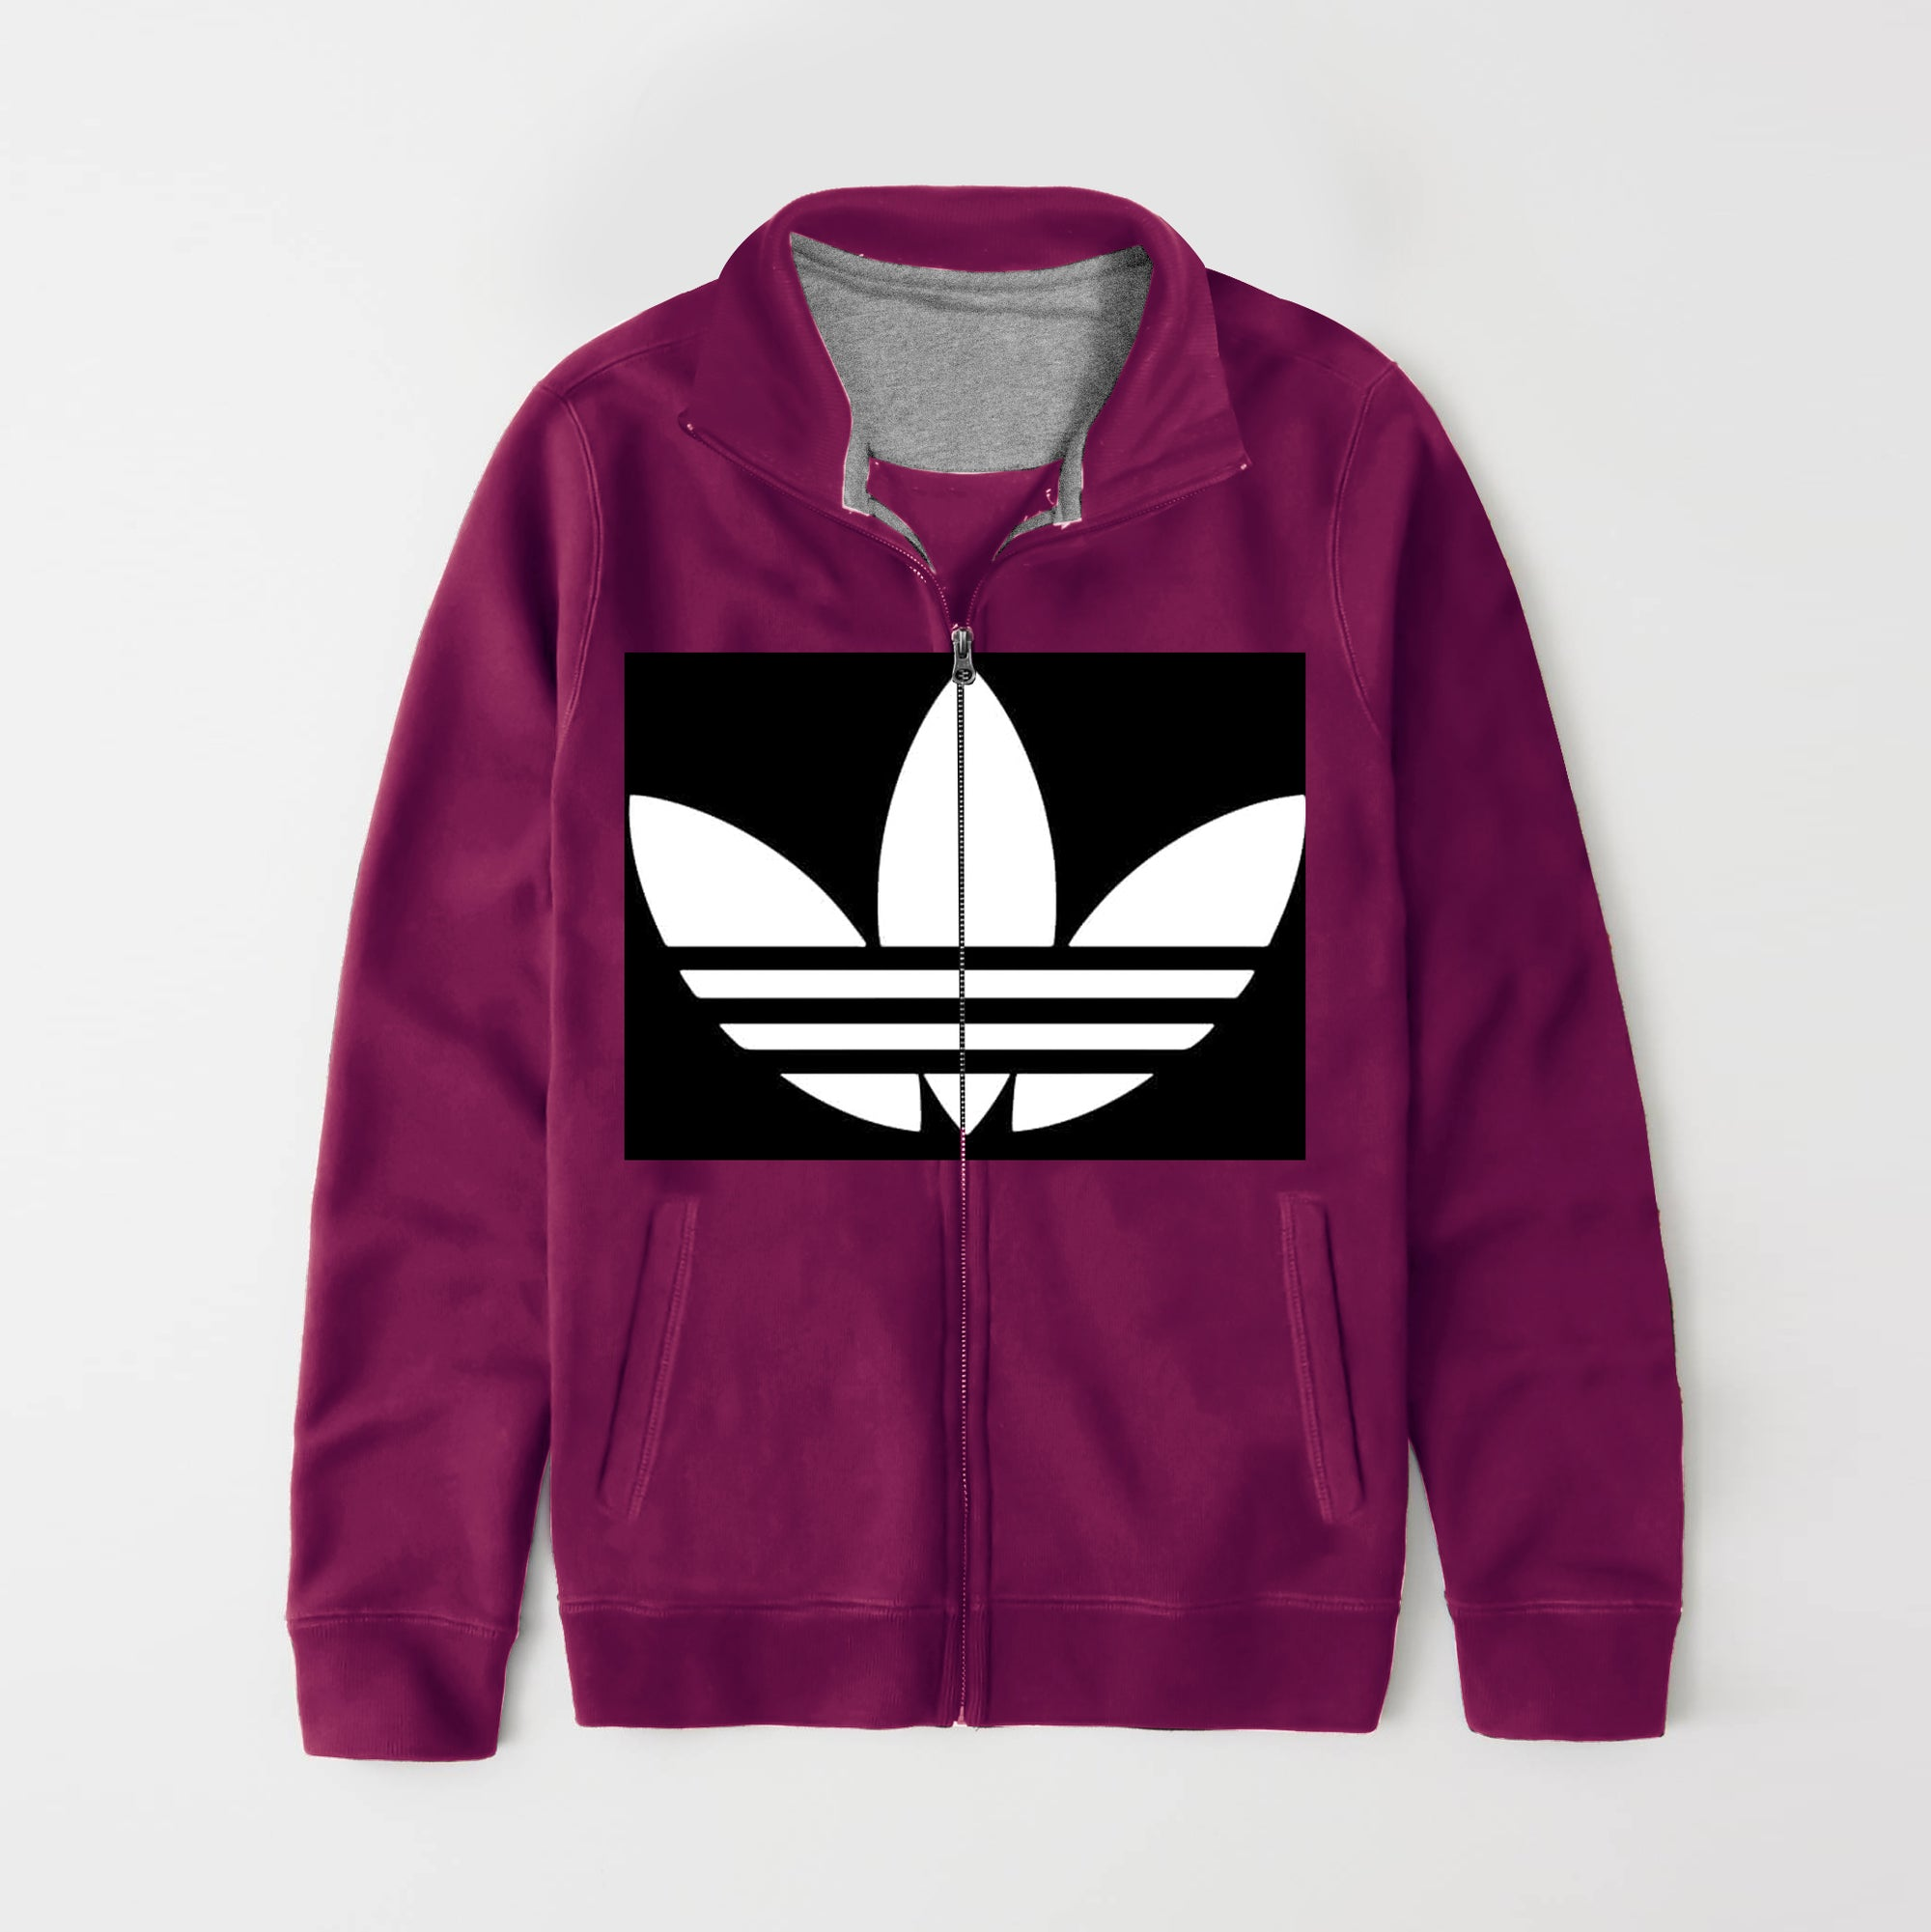 adidas fleece mens jacket